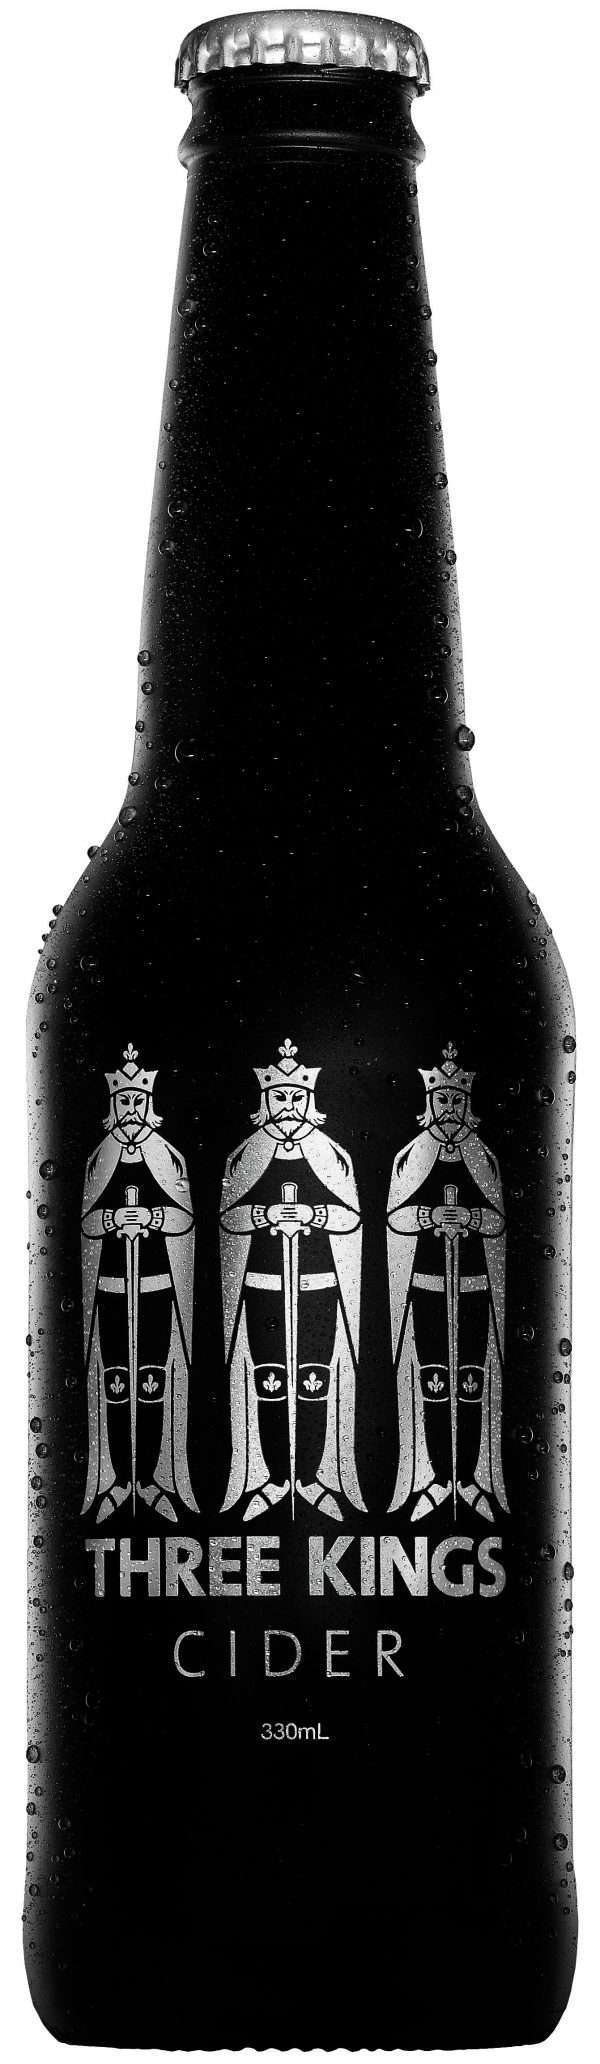 Three Kings Cider